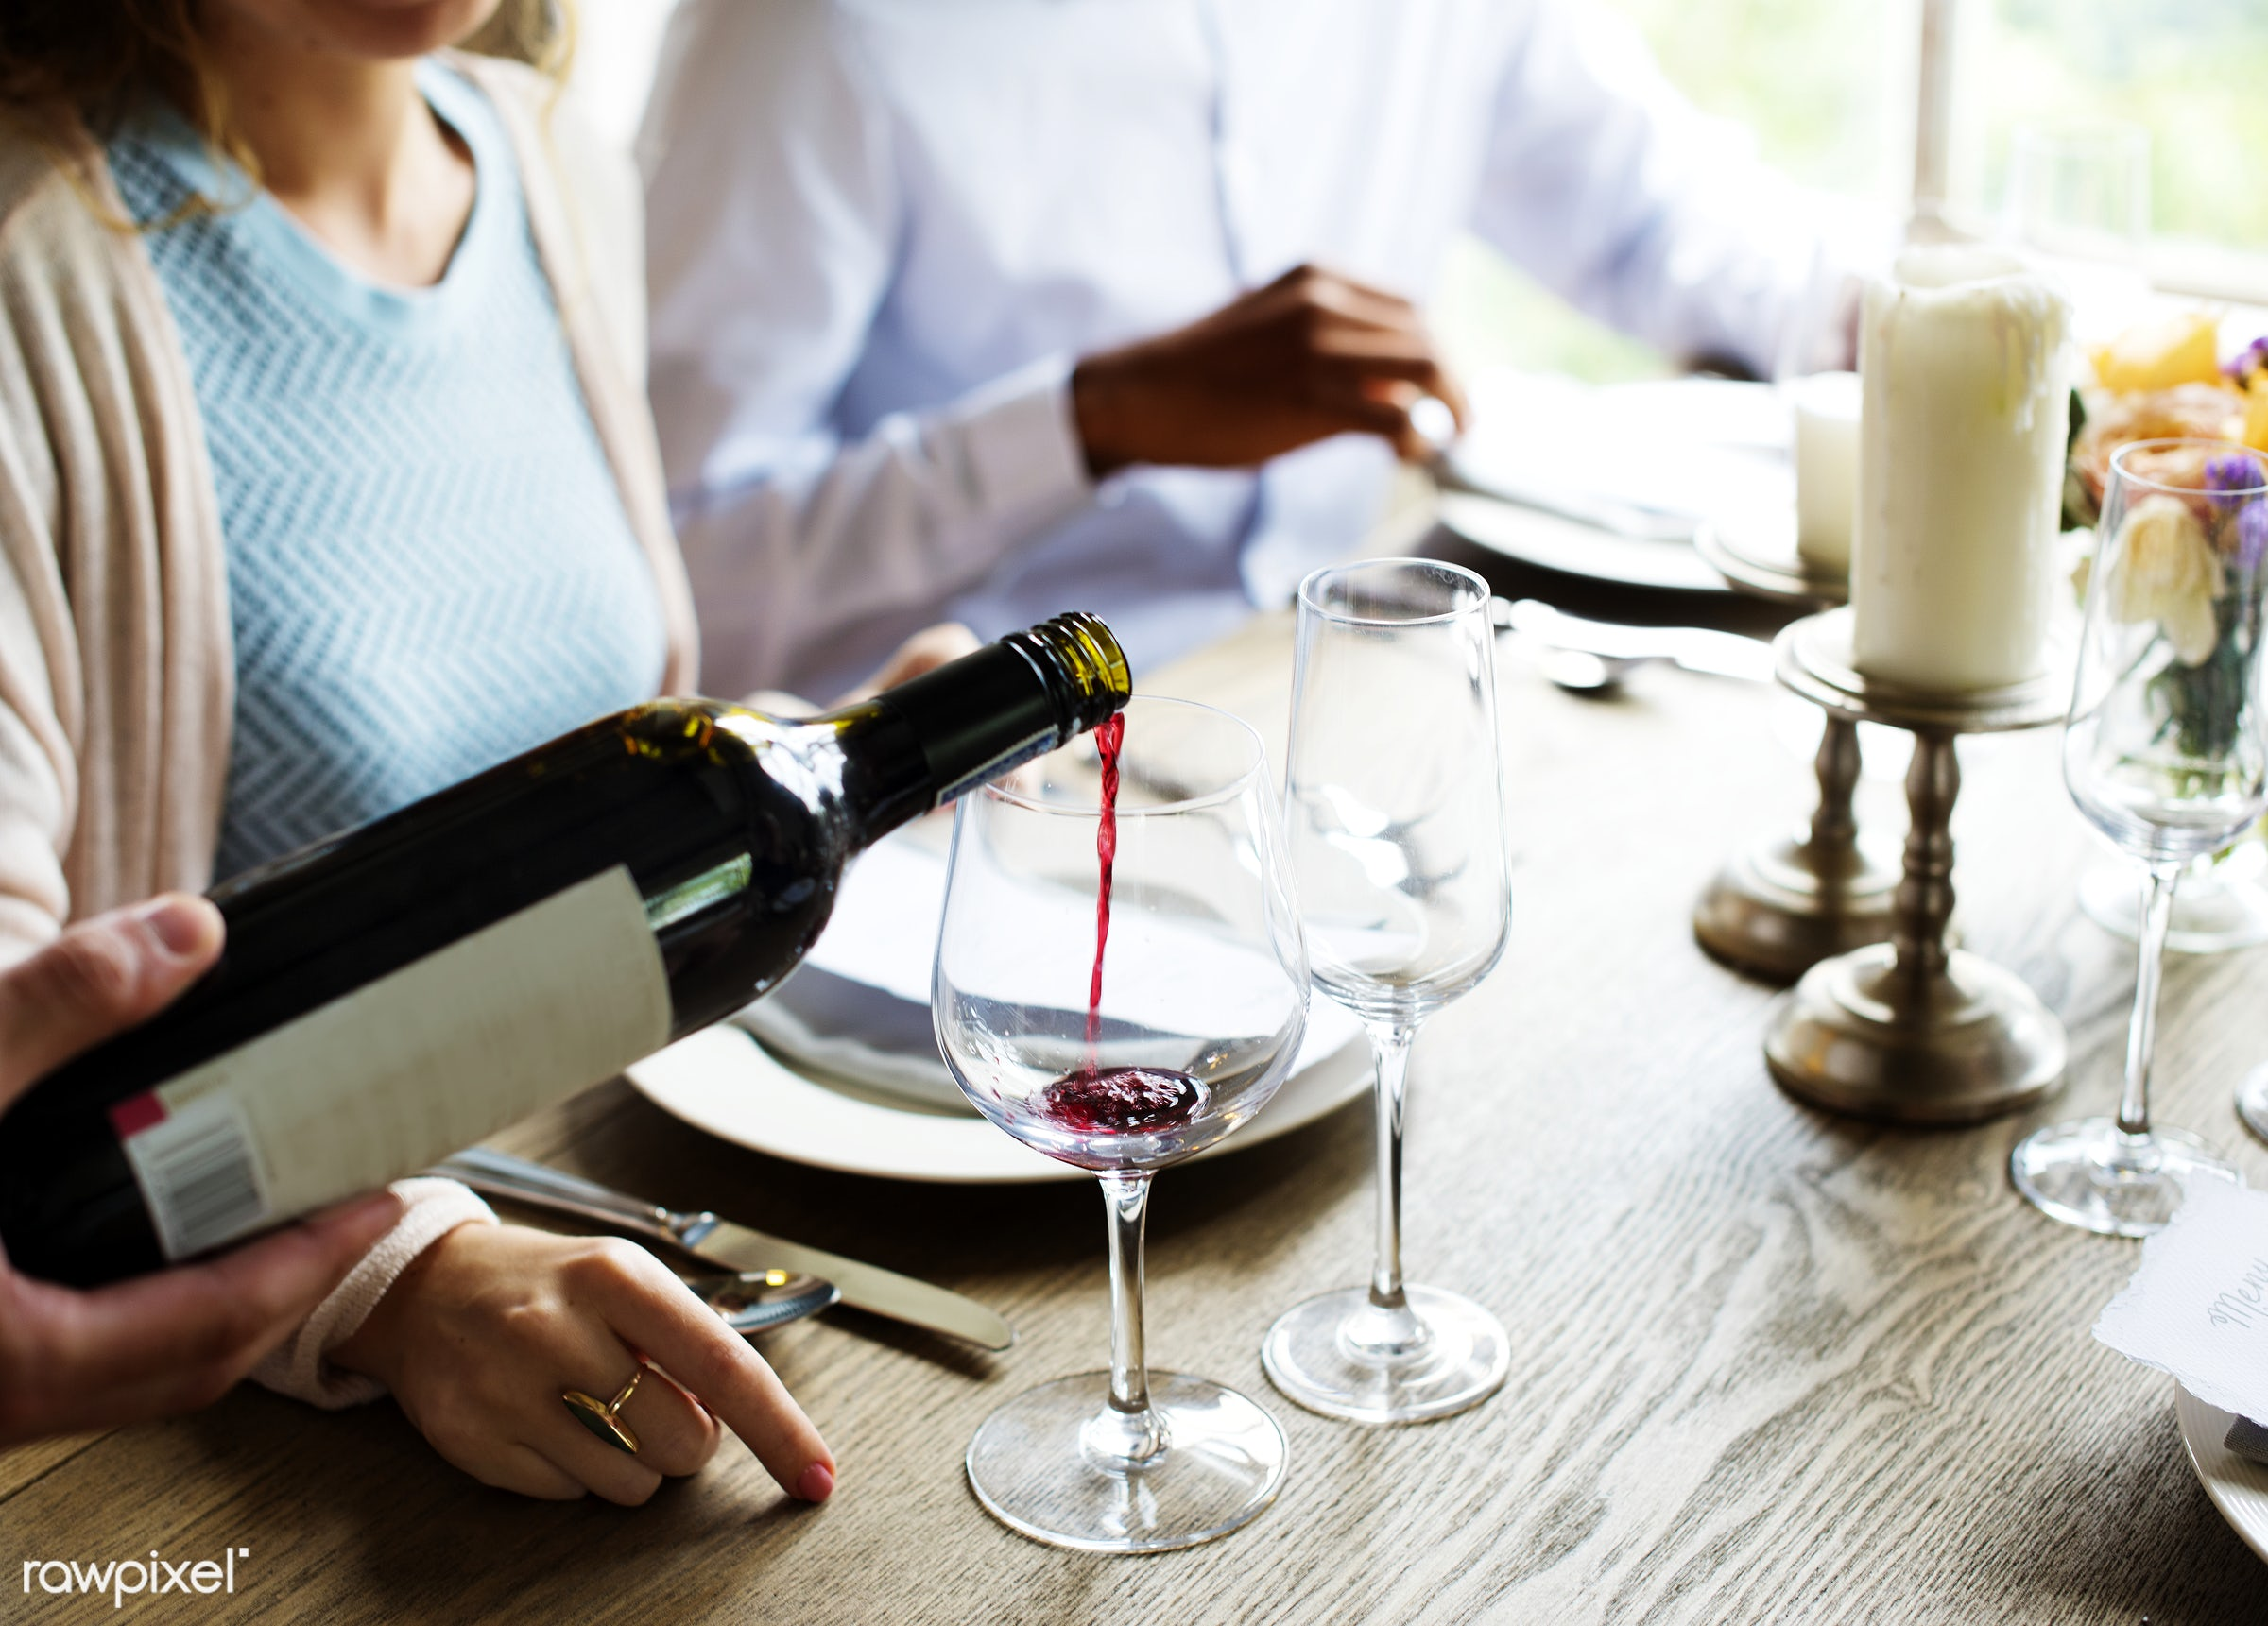 Waiter Poring Serving Red Wine to Customers in a Restaurant - service, tasting, adult, alcohol, beverage, bottle, chardonnay...